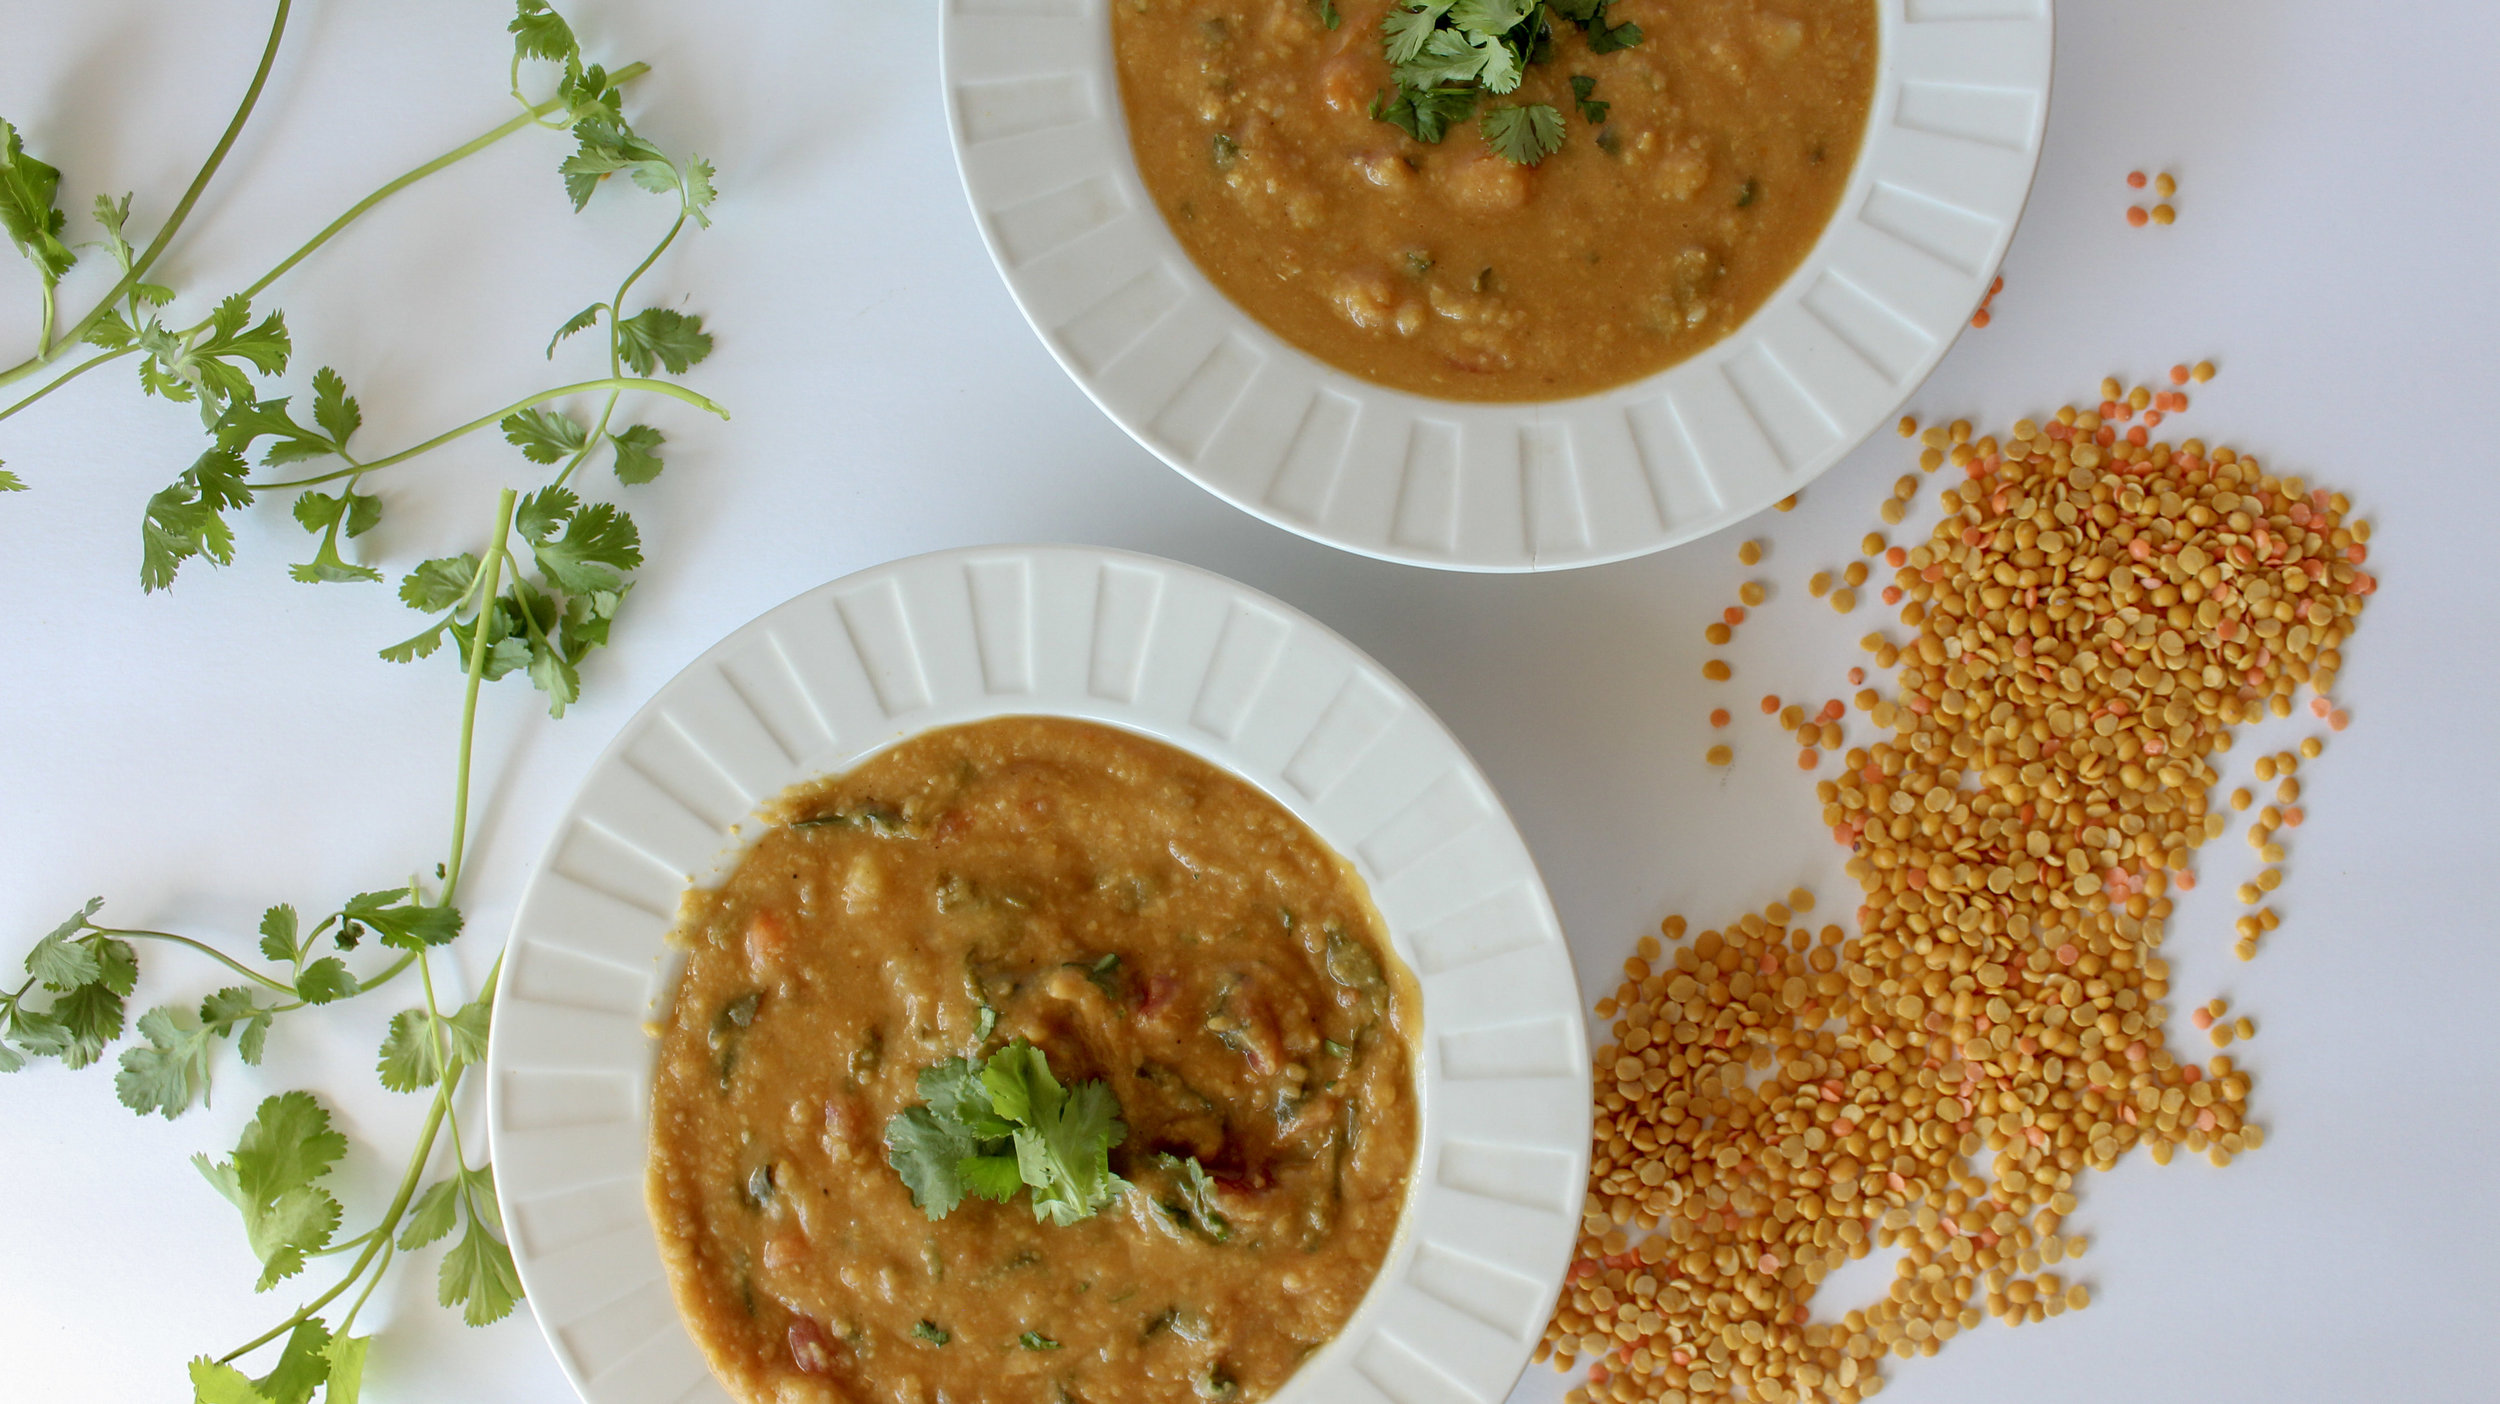 vegan slow cooker curry red lentil soup. Healthy, comforting and easy. Perfect for a cold evening when you don't feel like fussing around in the kitchen. Prepare in under 10 minutes and then let the slow cooker do the rest. Gluten free, healthy and vegan.